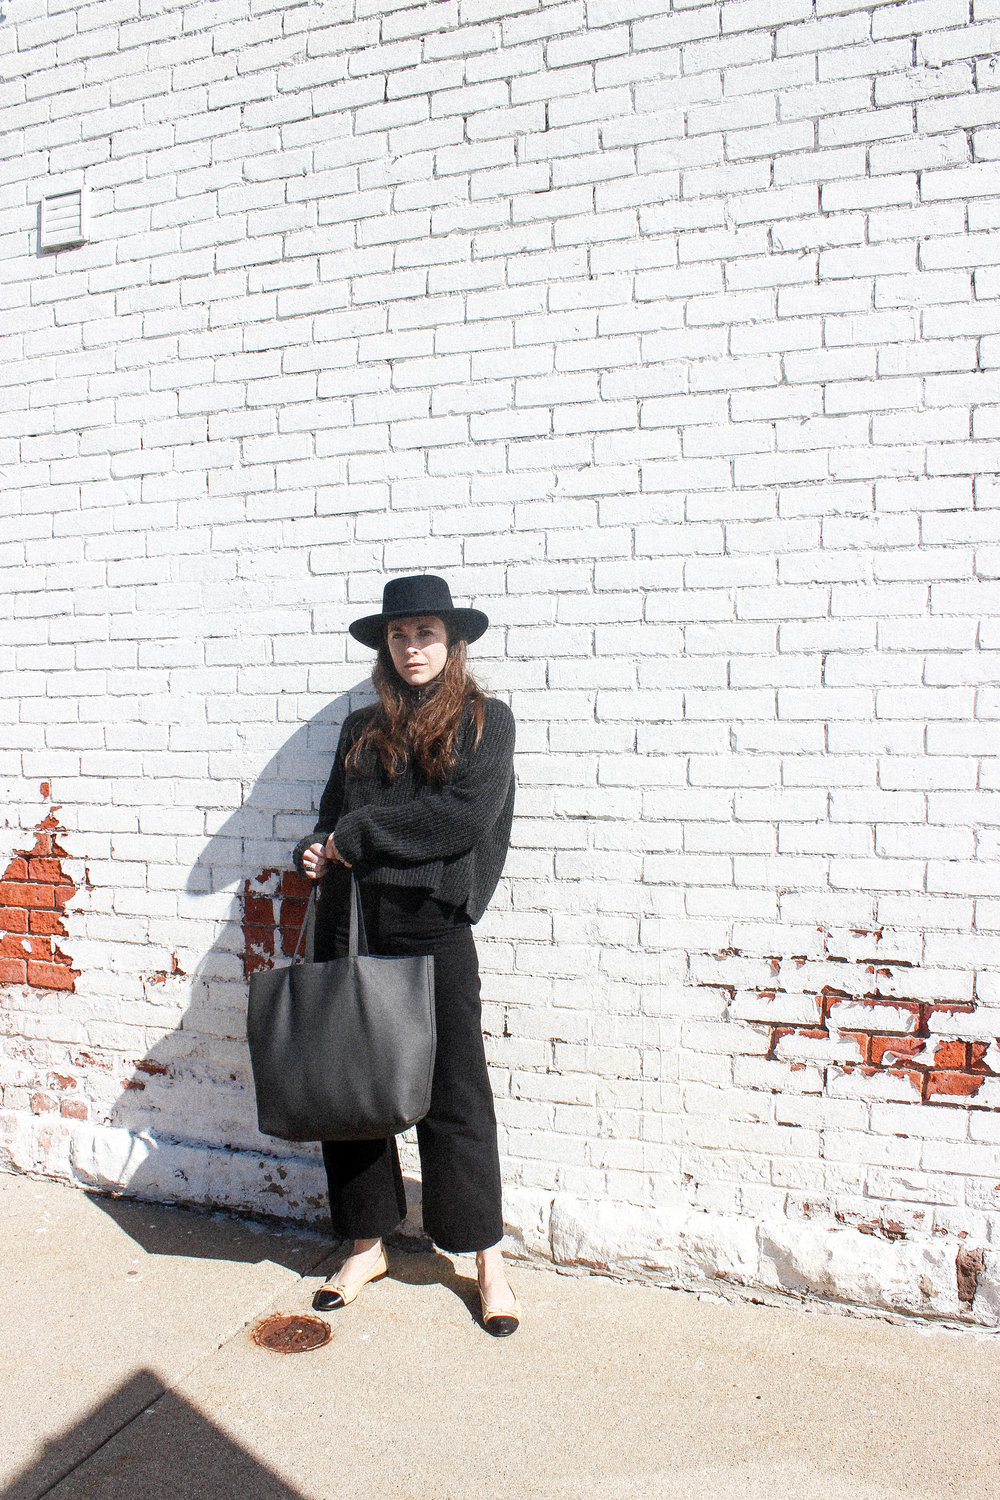 Tio y Tia Gamber Hat, Ayr Sweater (similar), Ozma of California Mock Neck Tank, Jesse Kamm Sailor Pants, Kristiina Taylor Leather Tote Bag, and Chanel Classic Ballet Flats. - TAYLORKRISTIINA.COM